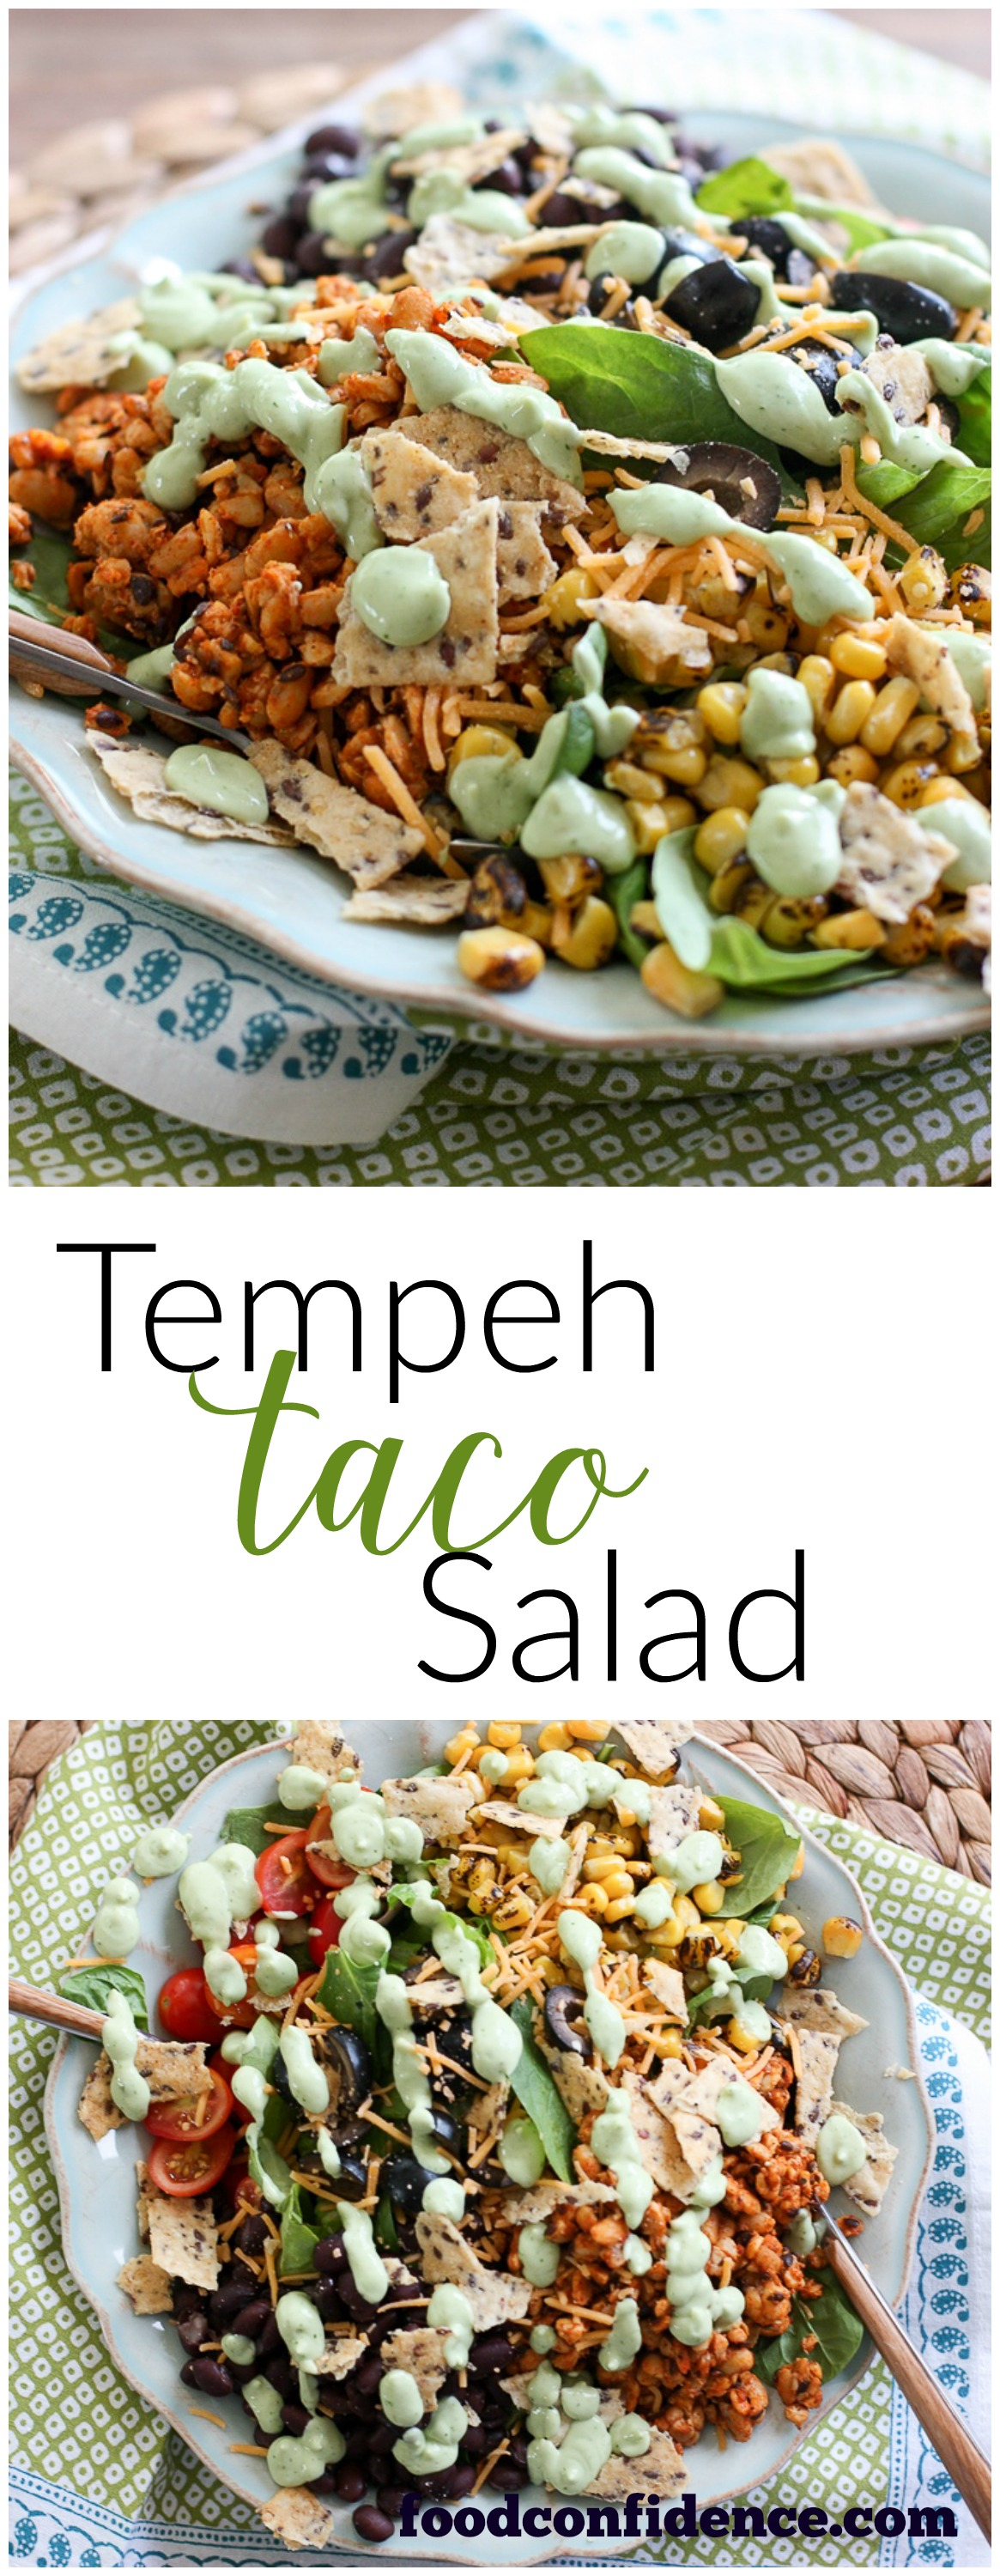 Healthy Tempeh Taco Recipe with Creamy Avocado Cilantro Dressing. Made with Greek yogurt. Super delicious, healthy and easy to make recipe for quick weeknight meal!